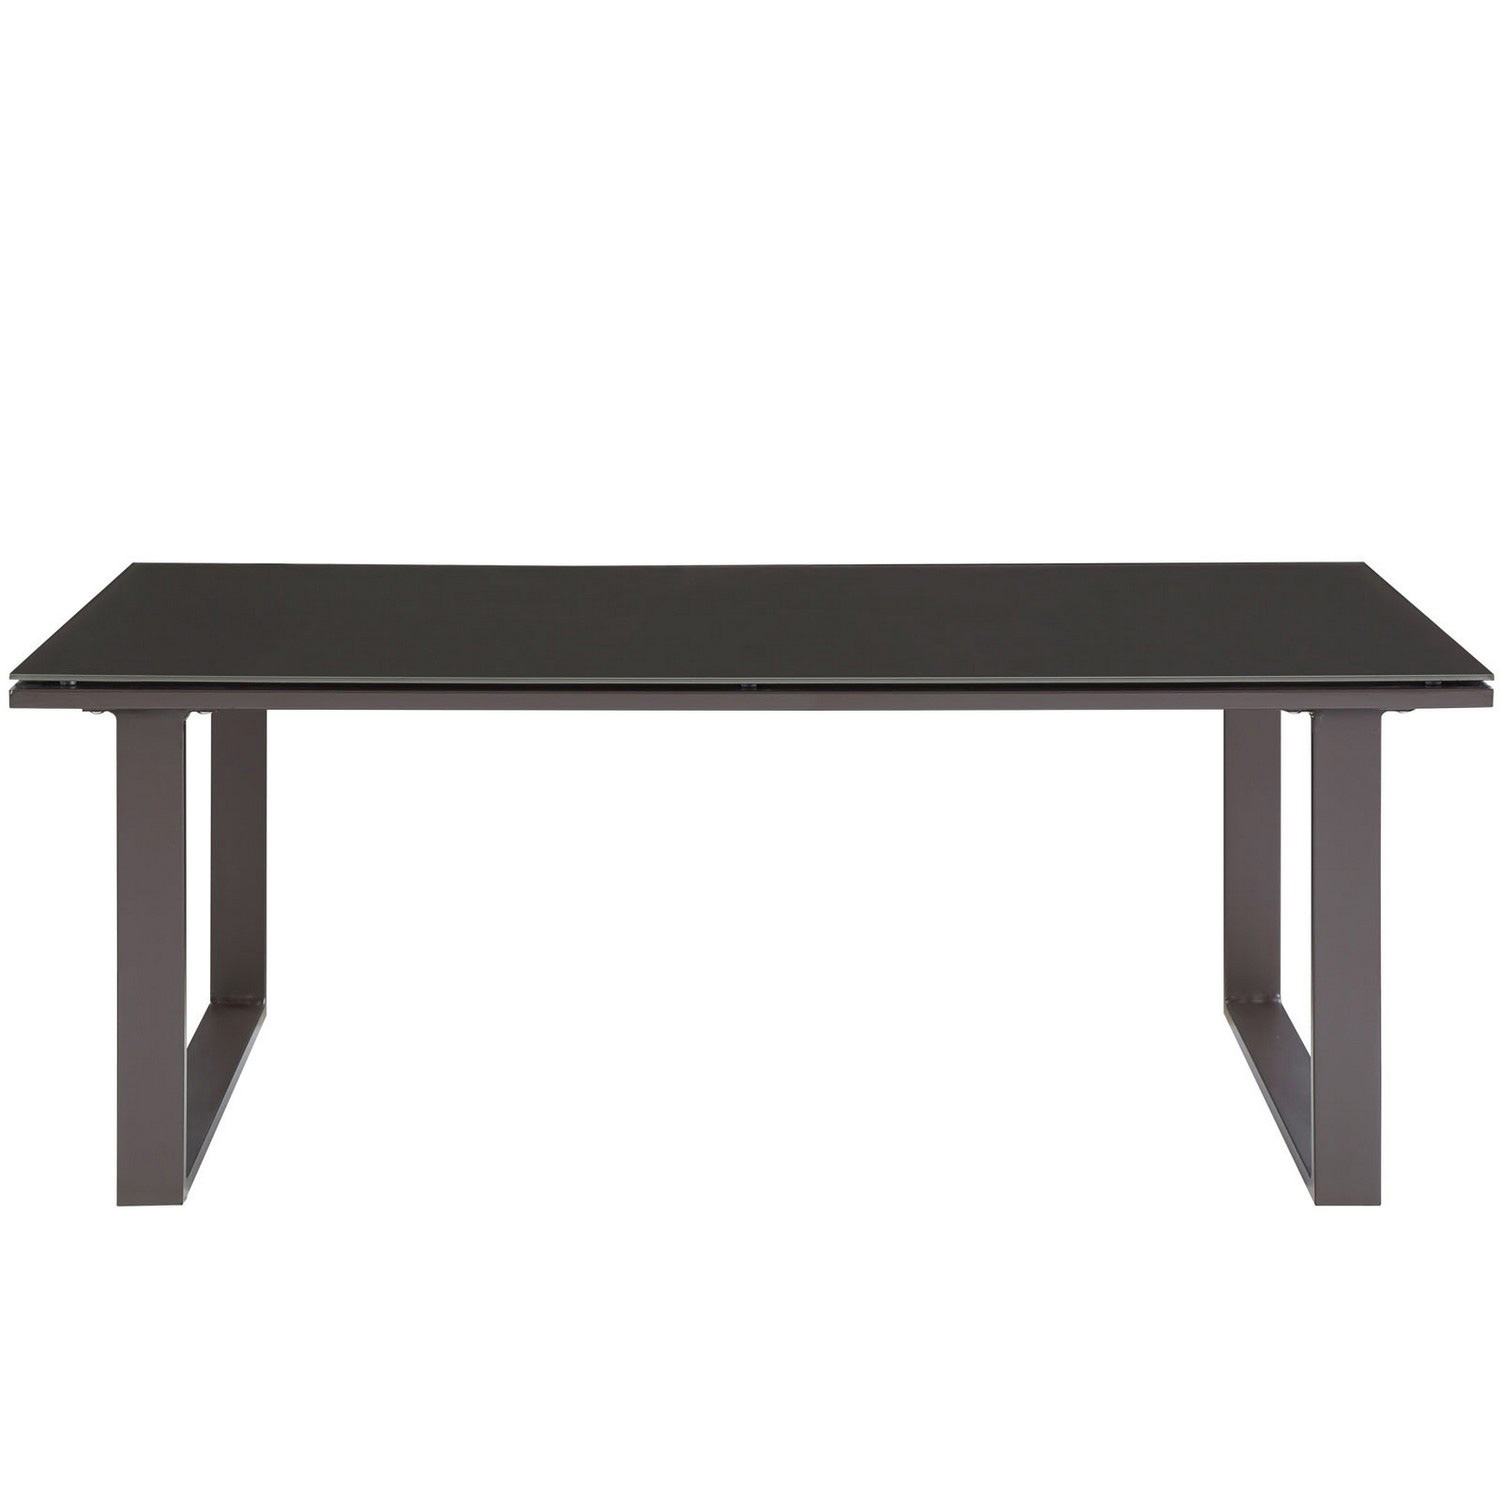 Modway Fortuna Outdoor Patio Coffee Table - Brown